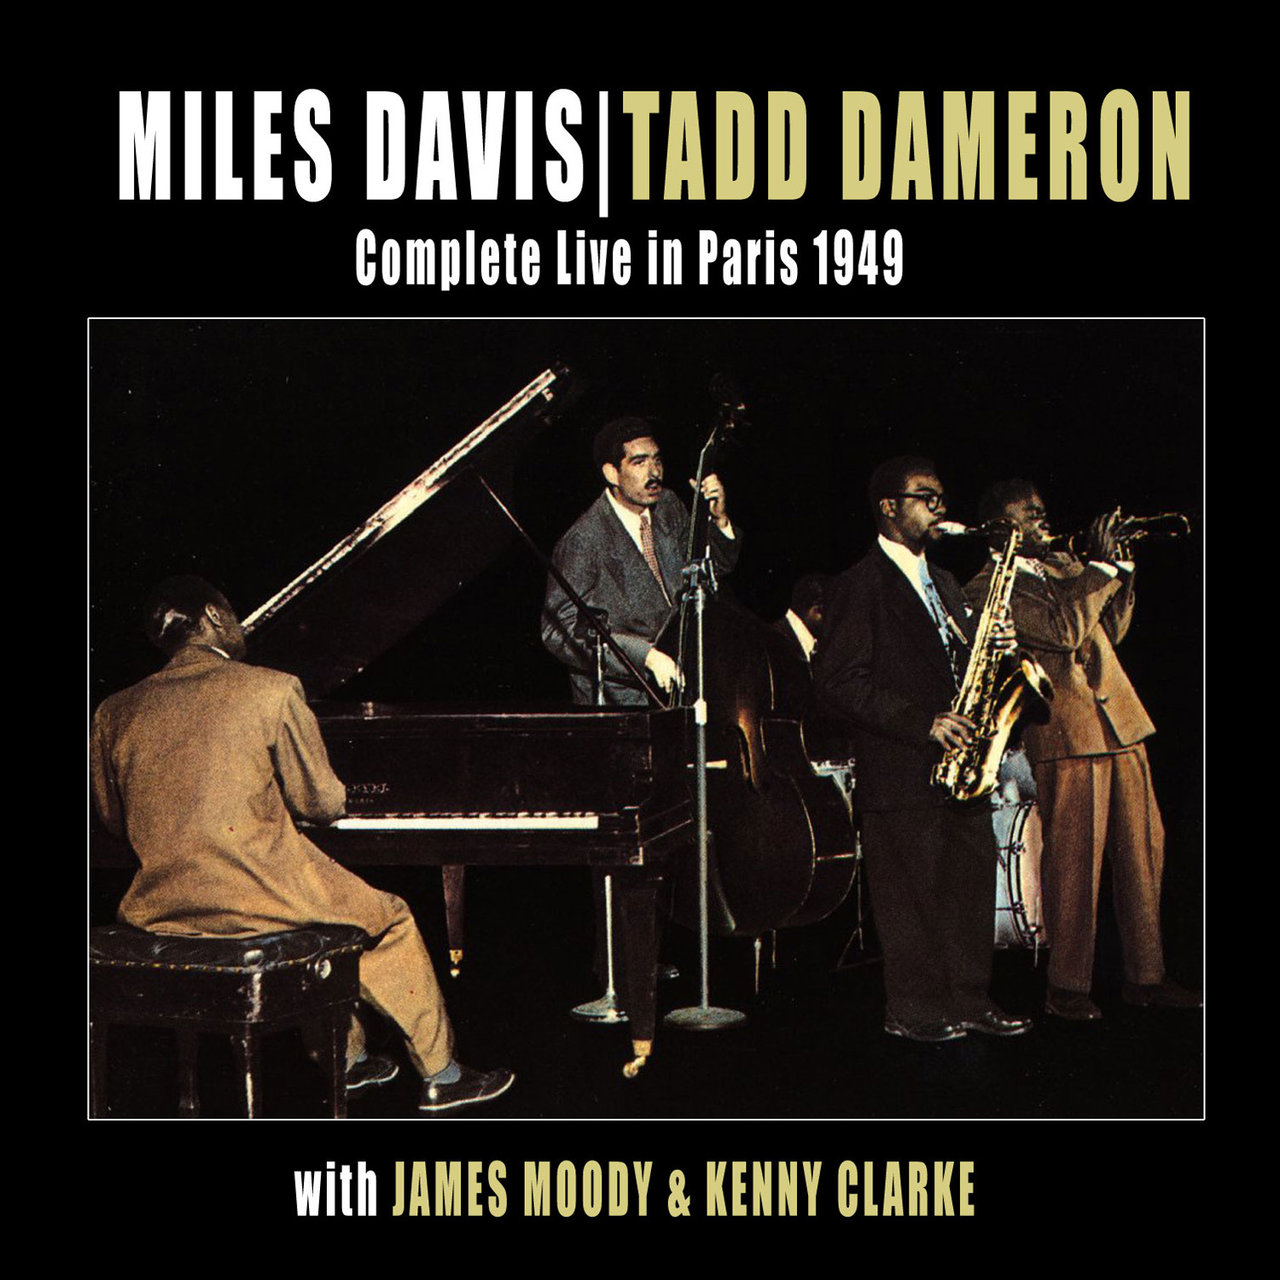 Complete Live in Paris 1949 (feat. James Moody & Kenny Clarke) [Bonus Track Version]